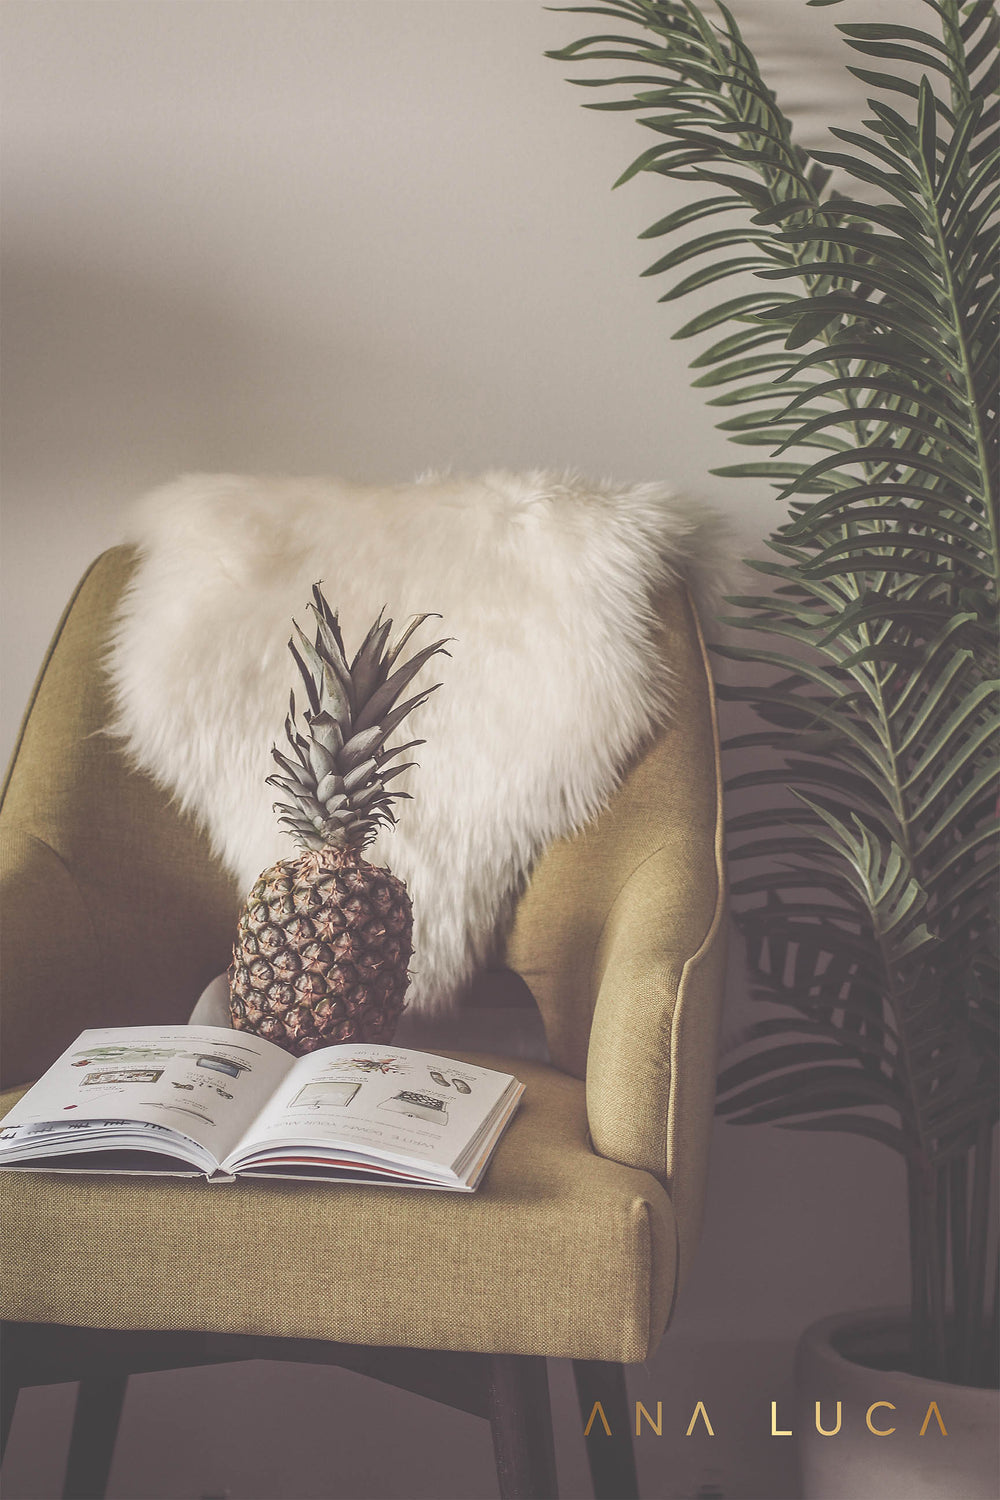 Pineapple Reads Art by Ana Luca